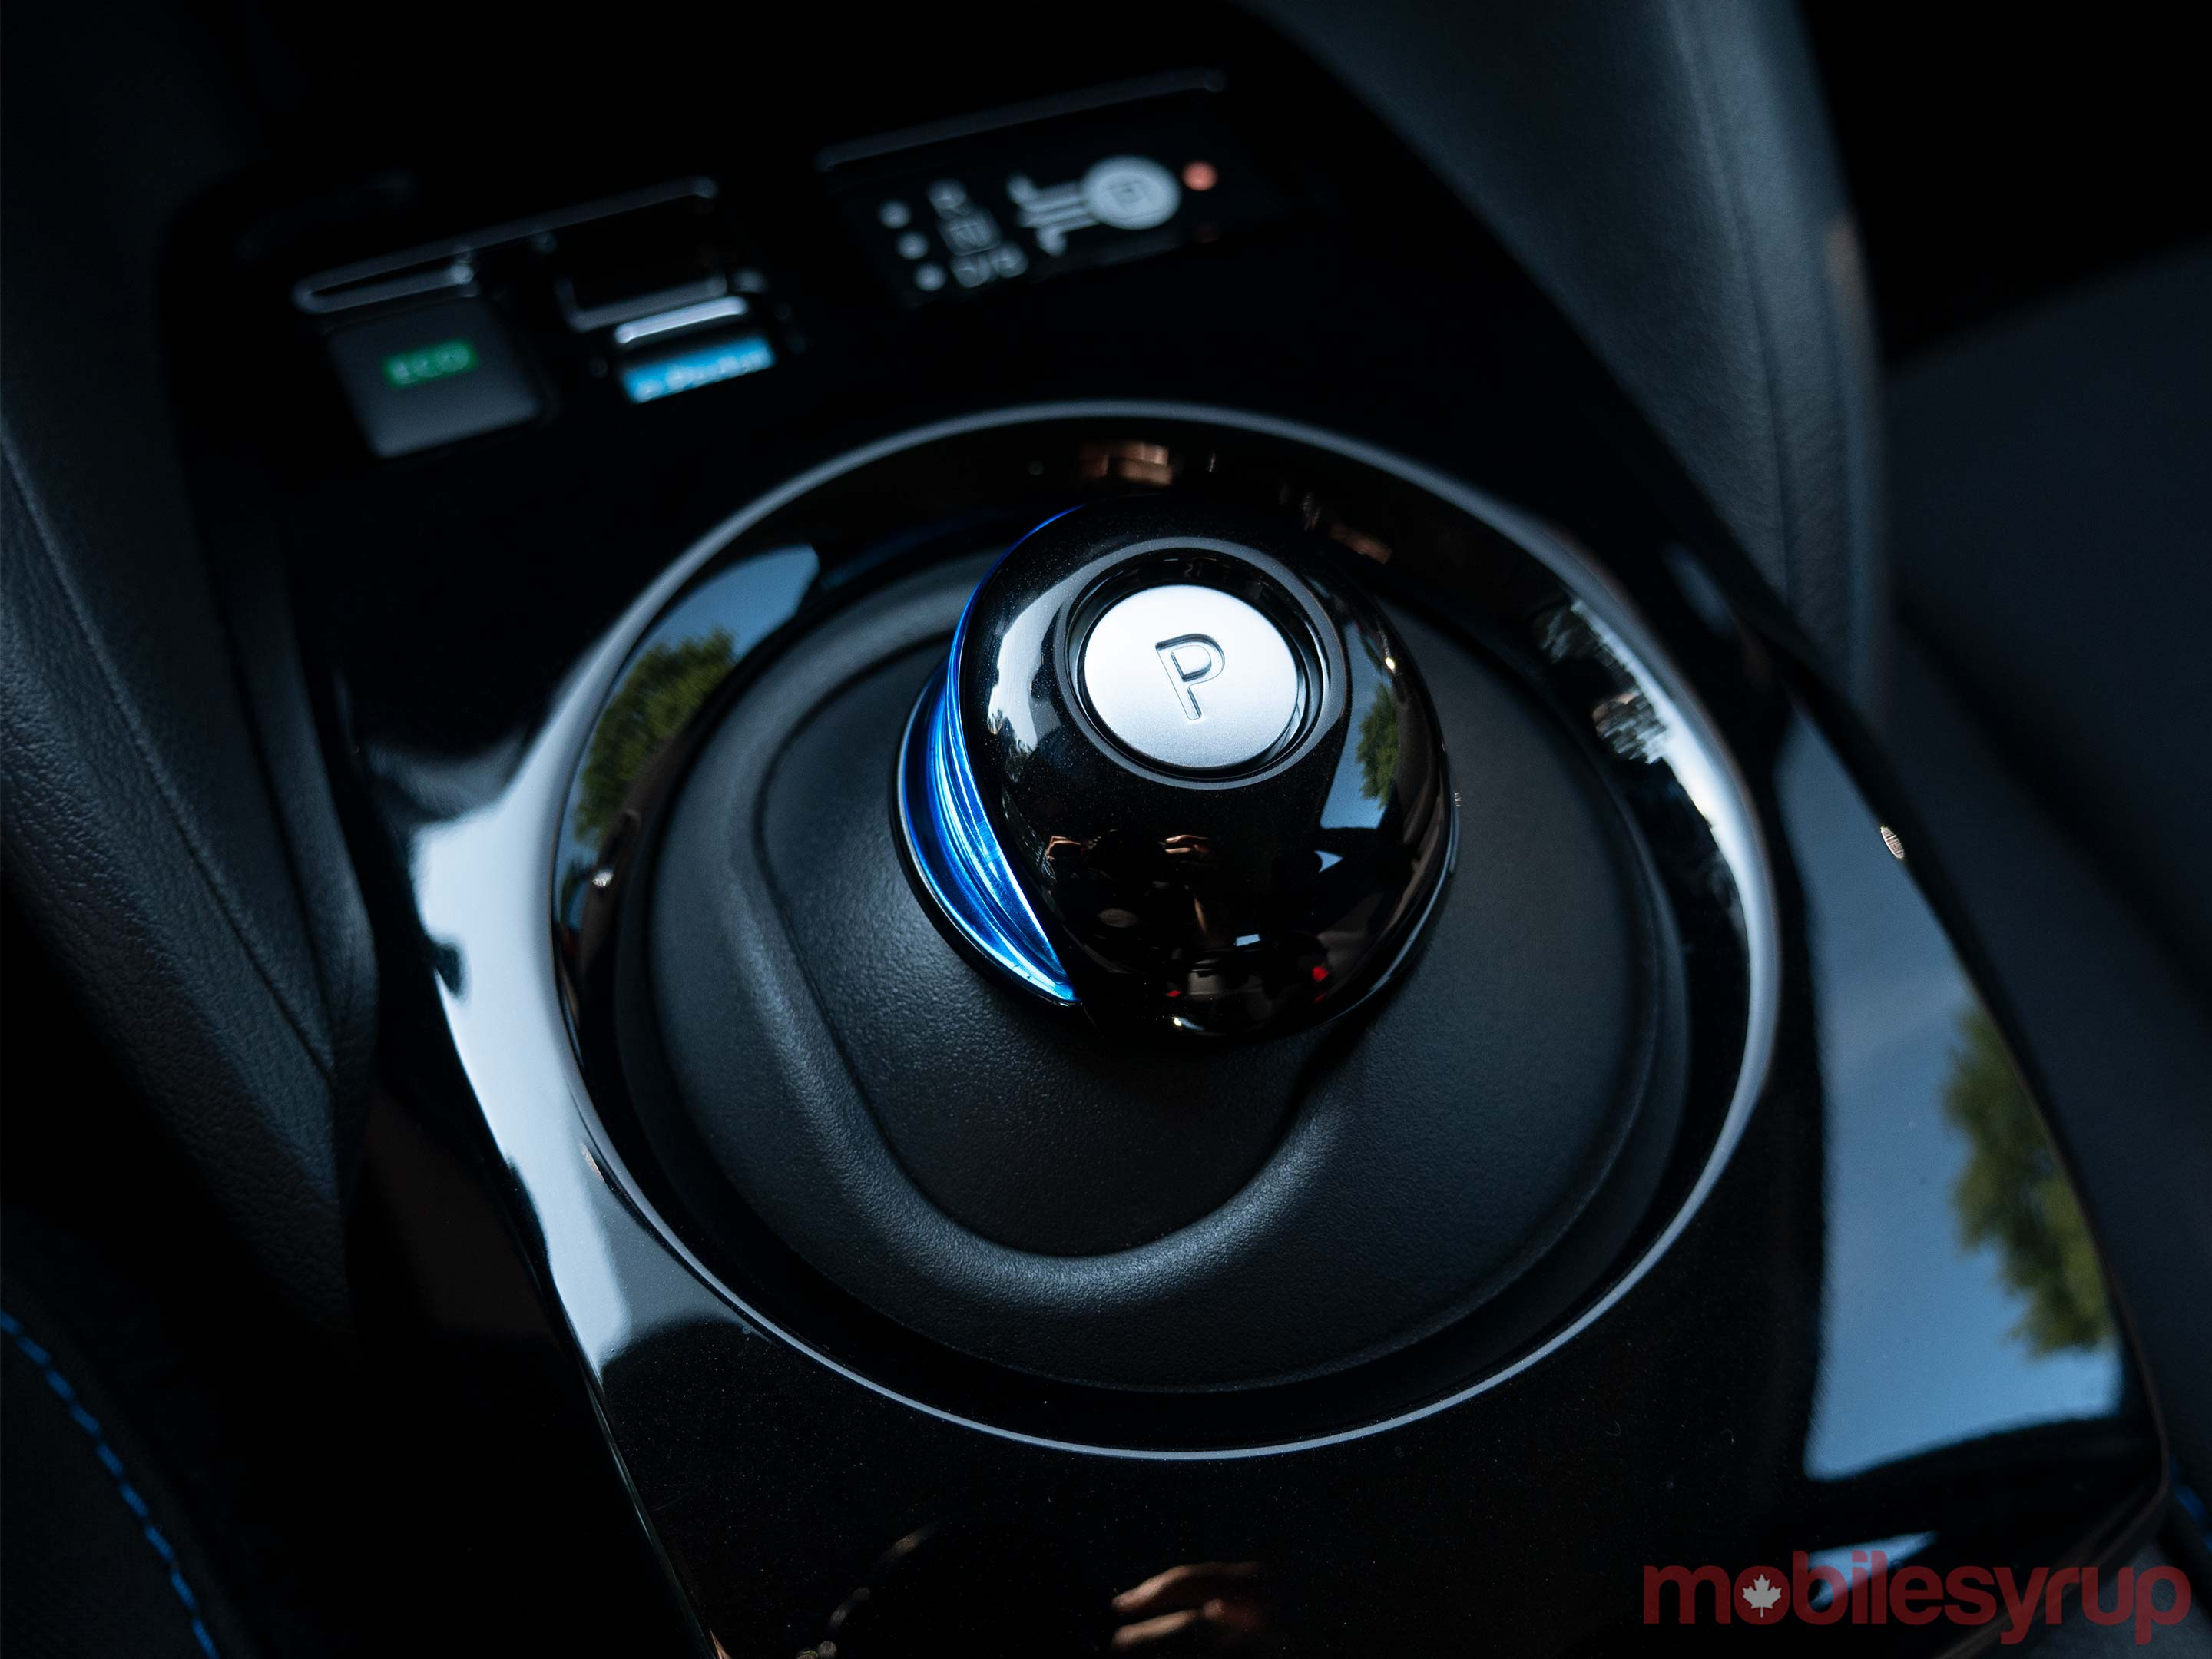 NIssan Leaf shifter